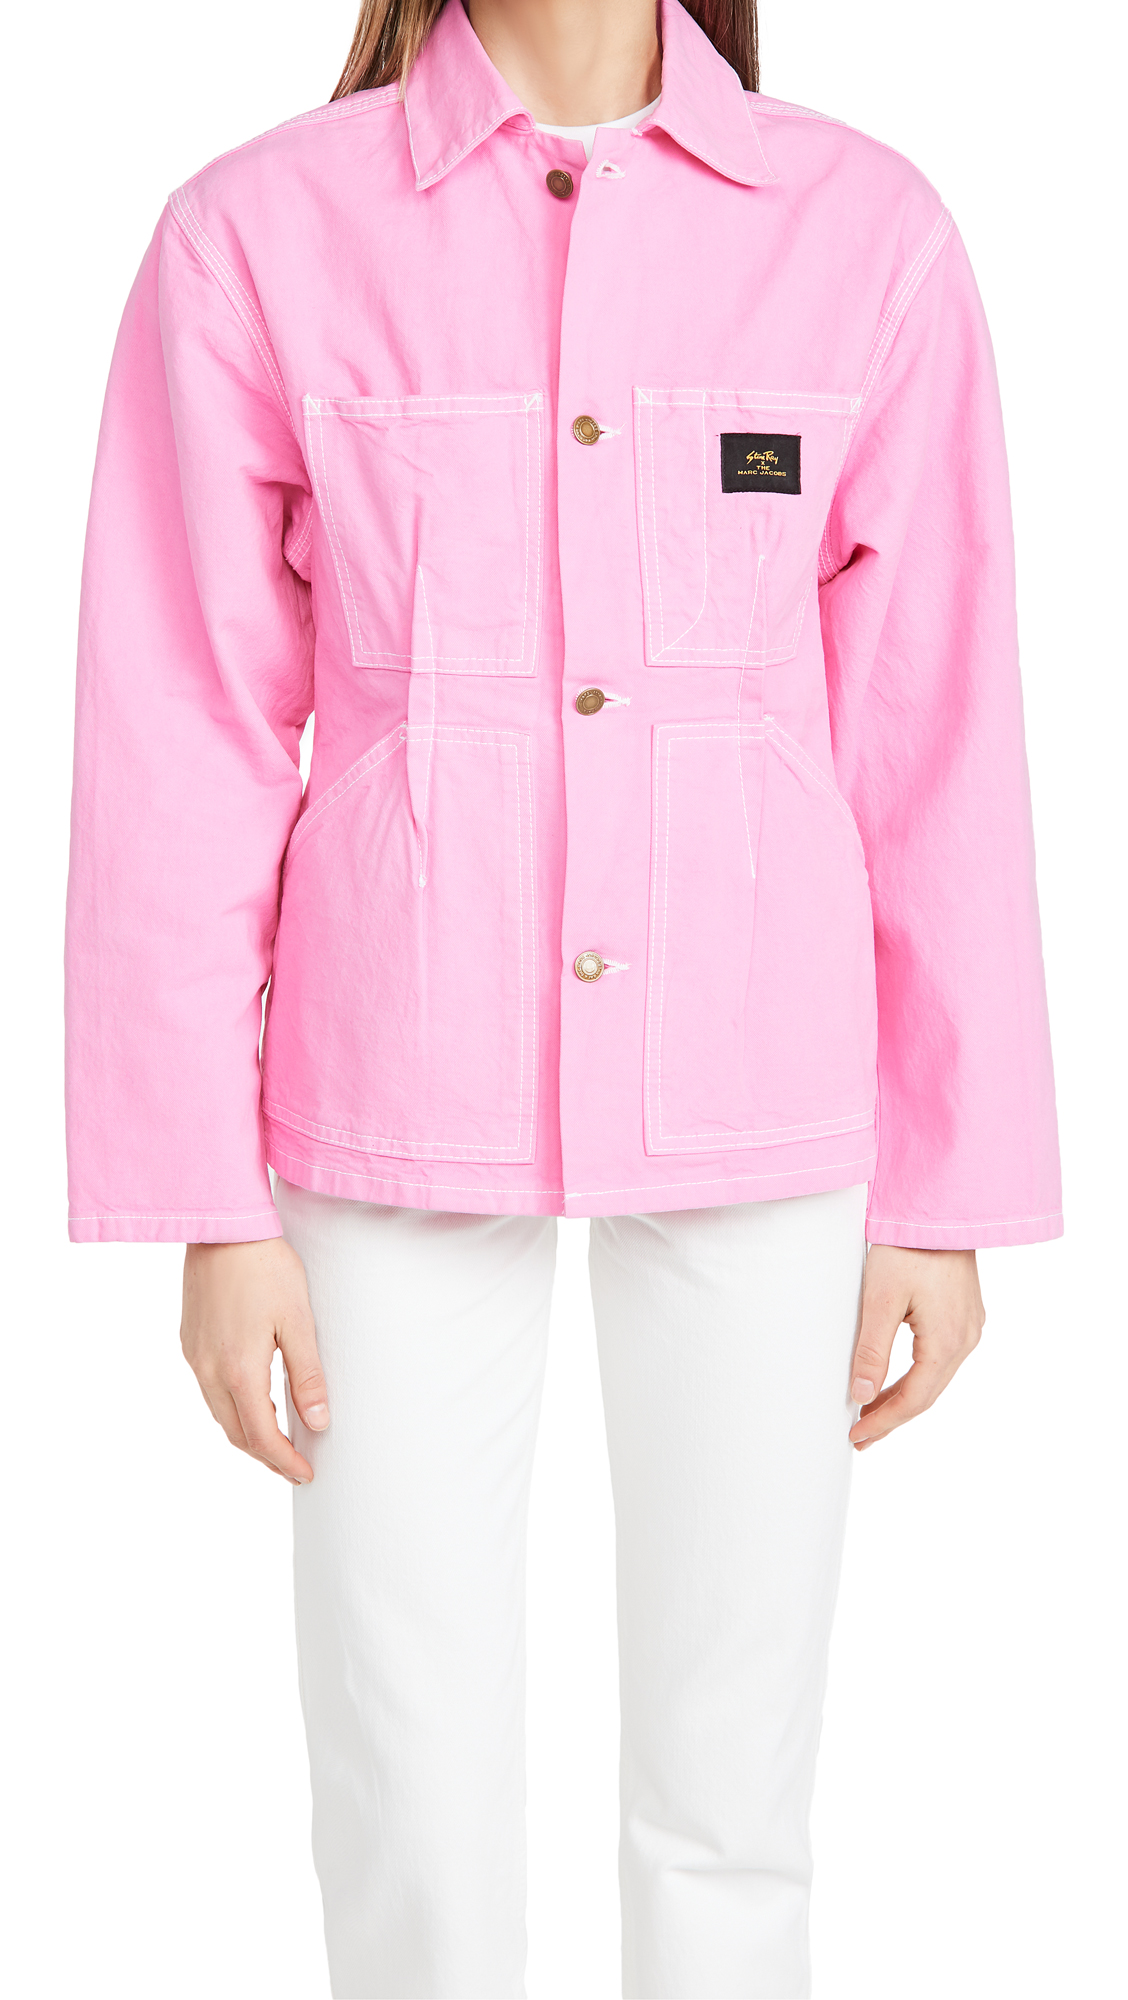 The Marc Jacobs S. Ray X Tailored Workwear Jacket